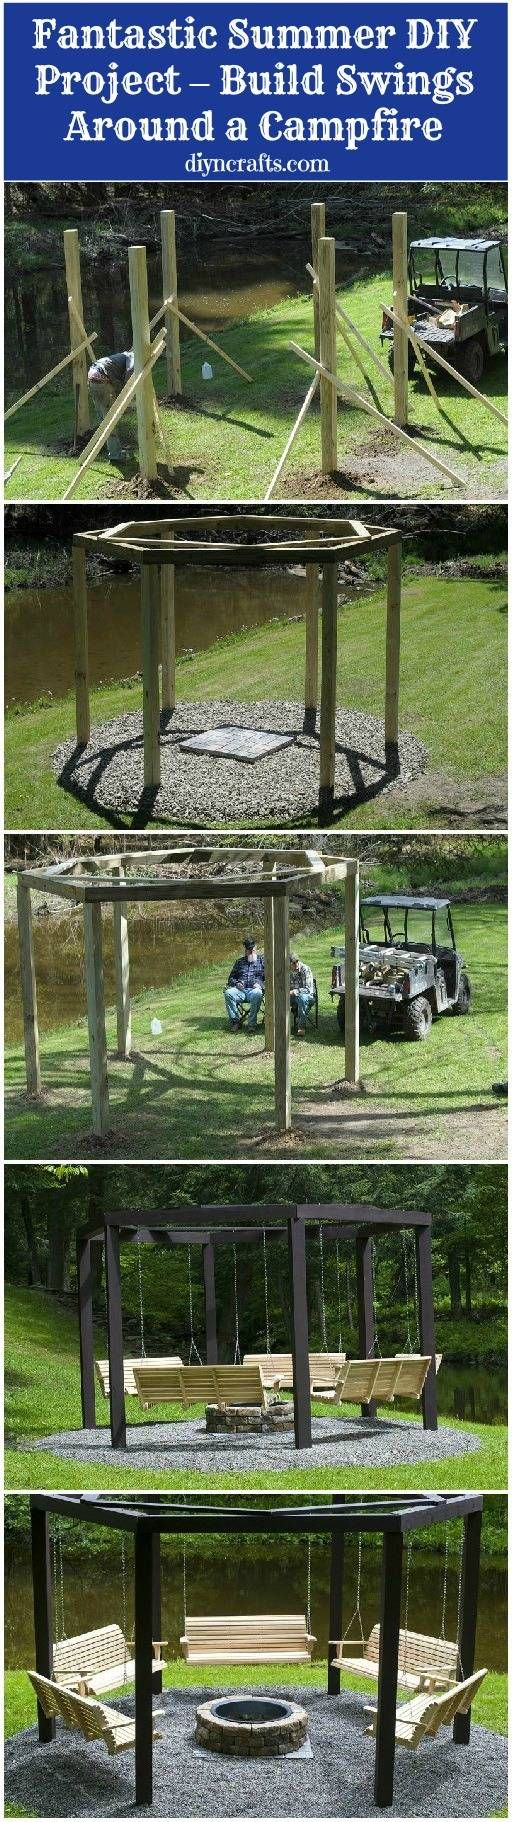 Pretty sure I need to move to a place with a backyard so I can build this 'cause holy frick it's amazing. (Fantastic Summer DIY Project – Build Swings Around a Campfire)